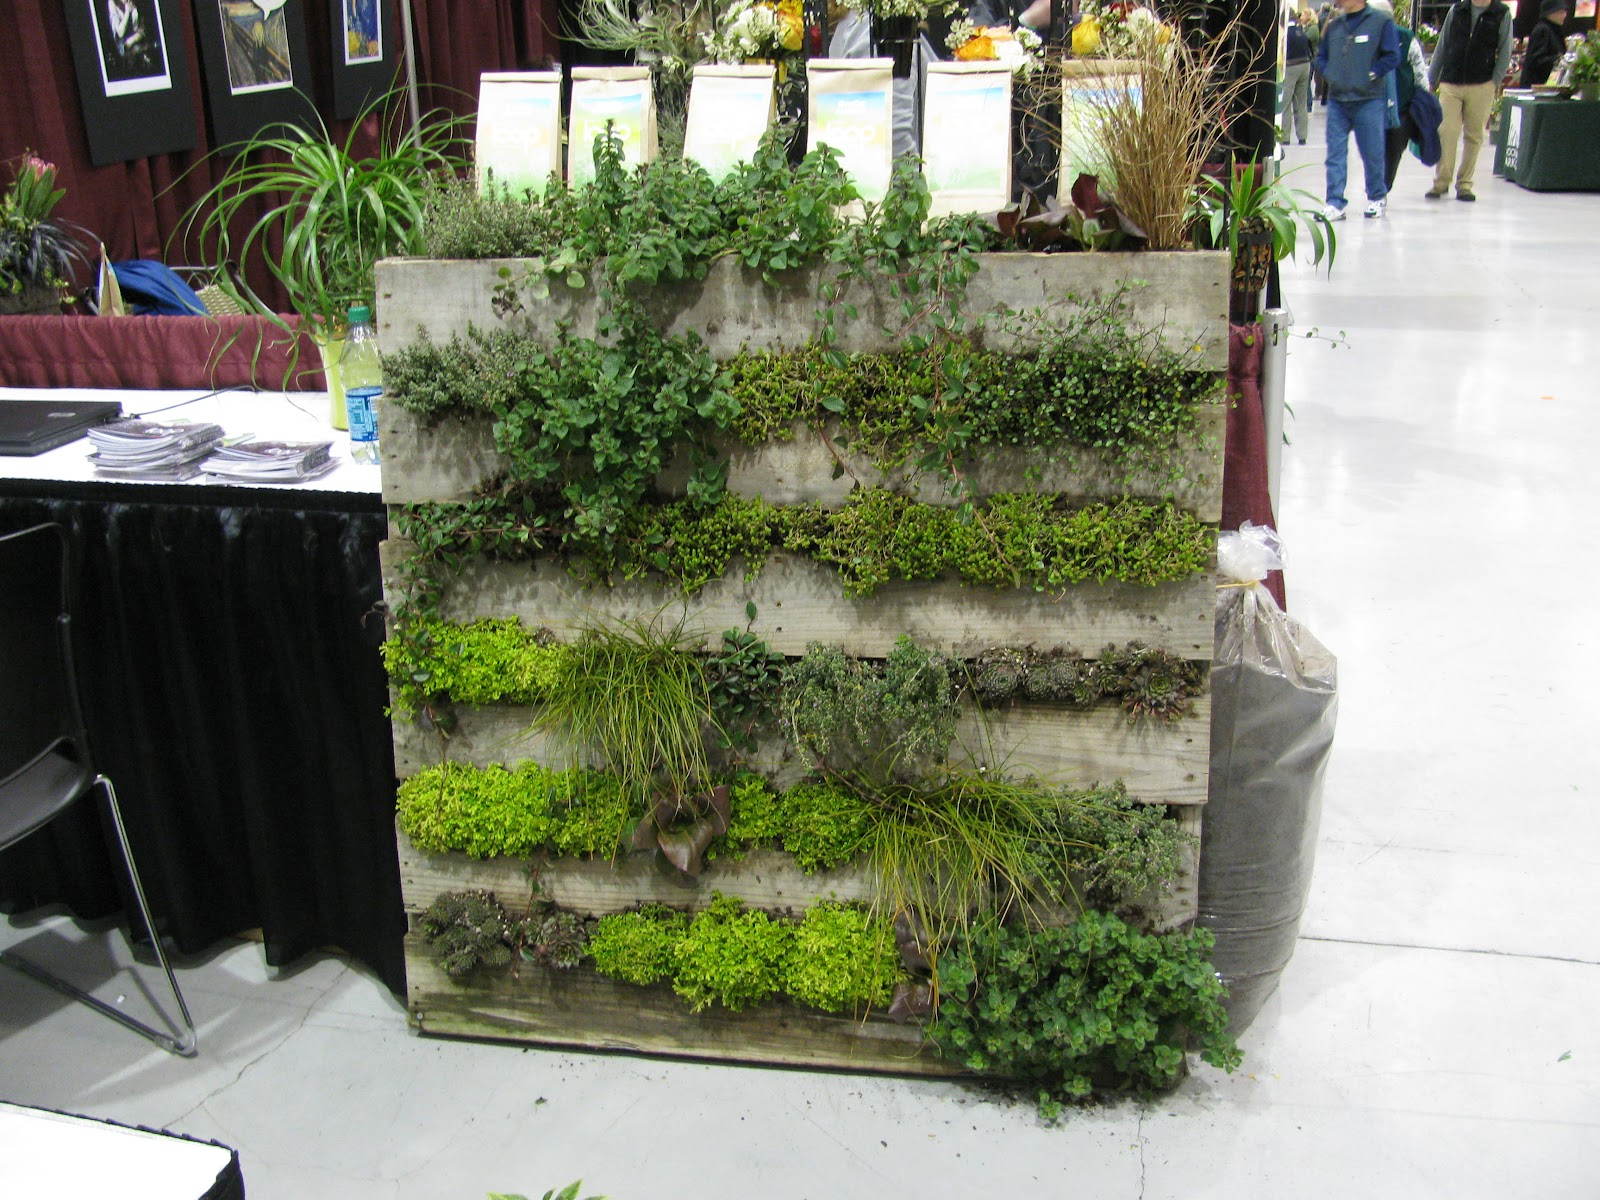 How about a green wall made out of an old wooden pallet?